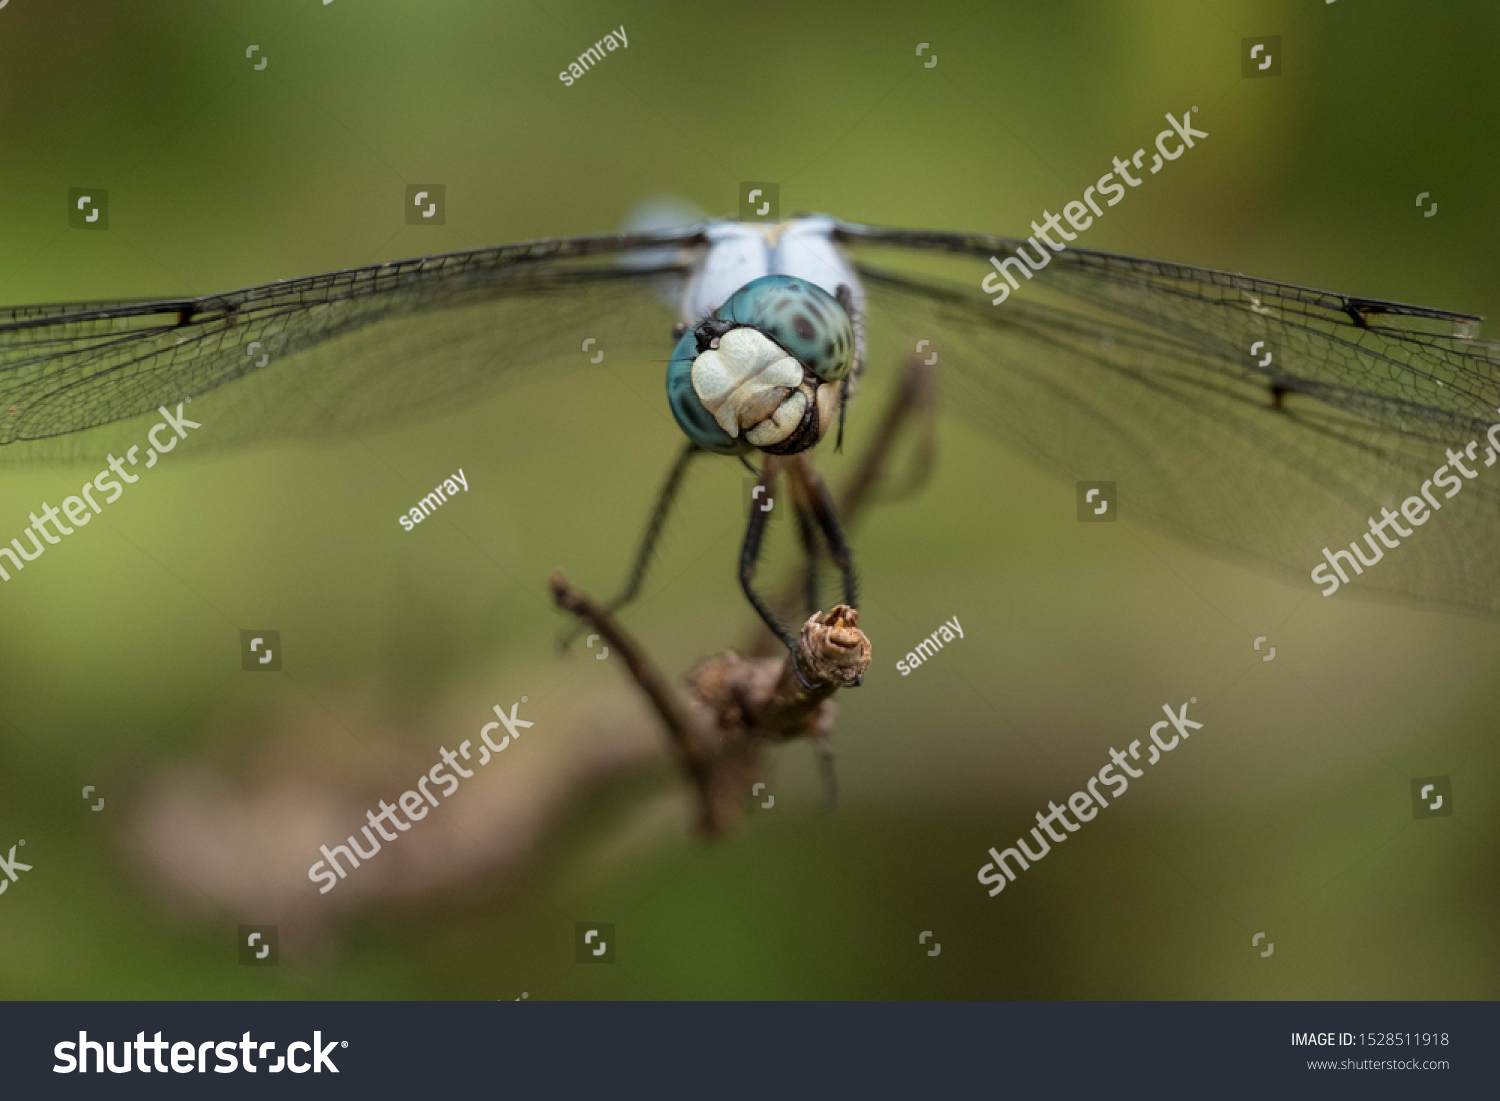 This slaty skimmer tilts its head as it eyes tiny insects flying by. But the position of the mouth and jaws makes it appear to be laughing. Good for a meme.